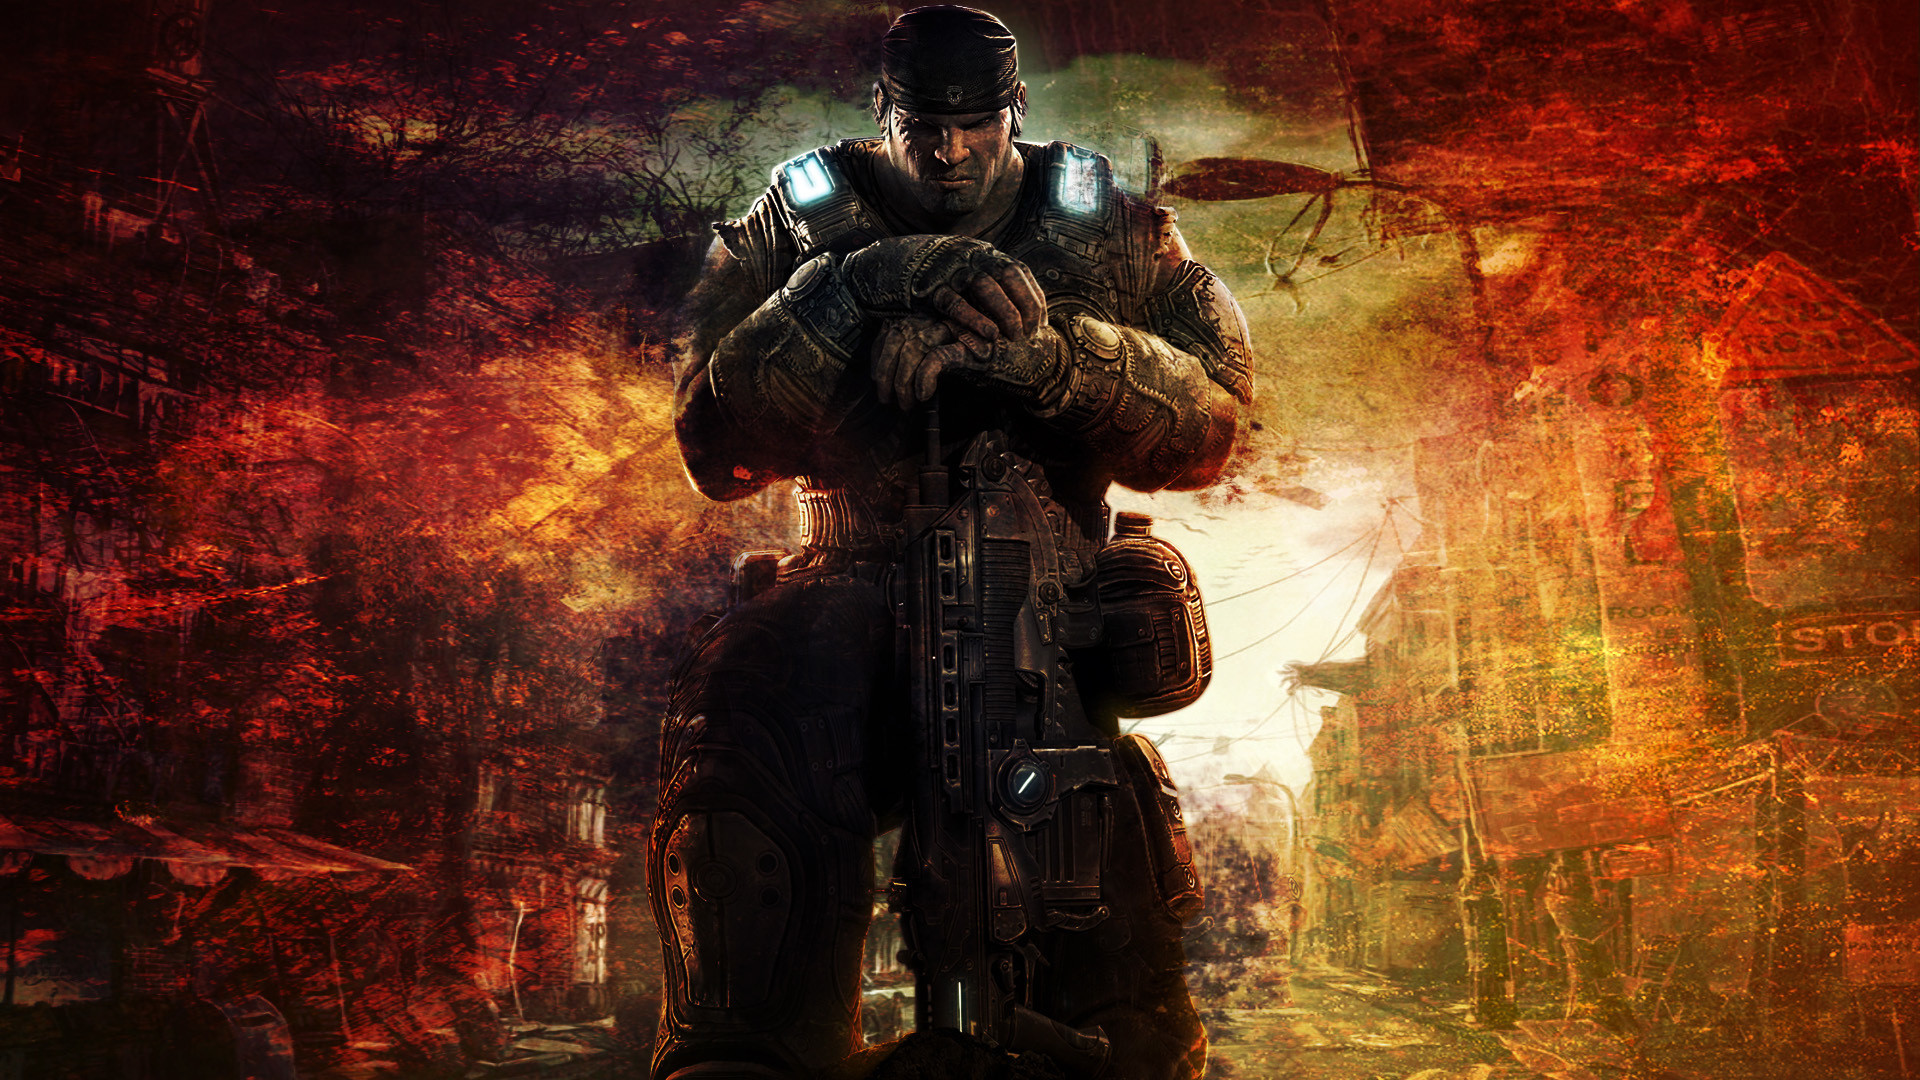 1920x1080 Gears of War 3 HD Wallpaper